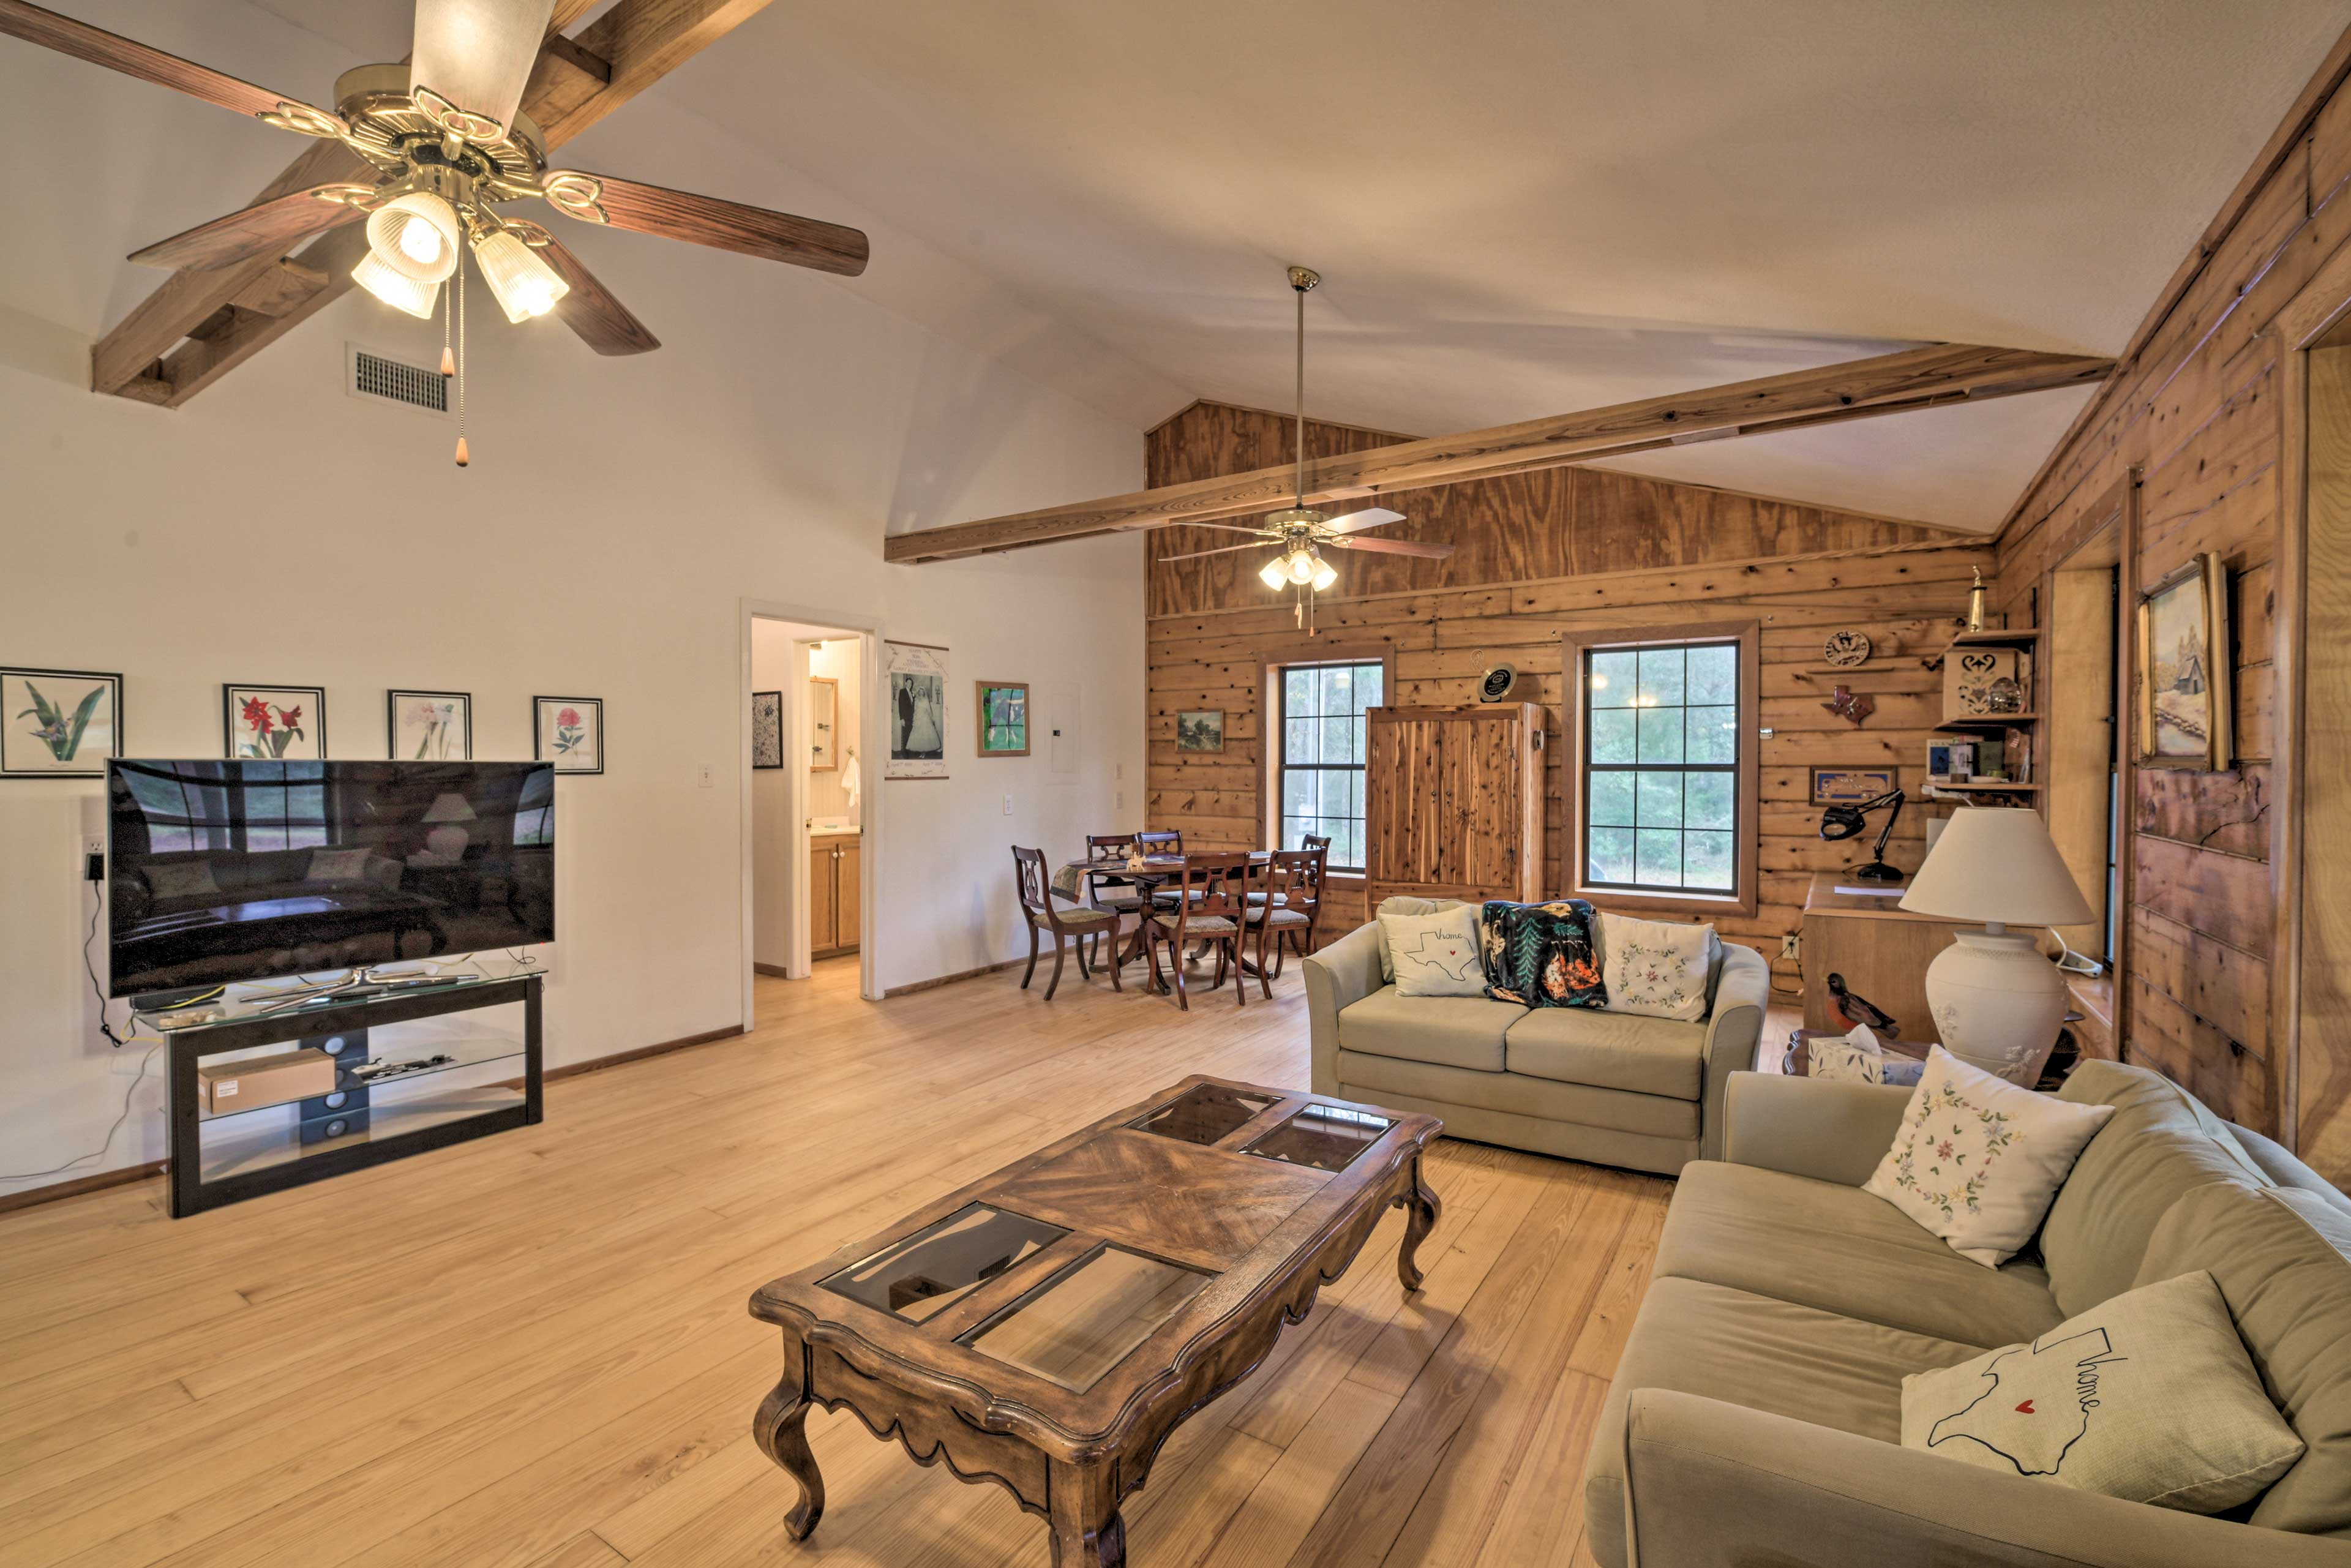 This vacation rental cabin hosts up to 8 guests.